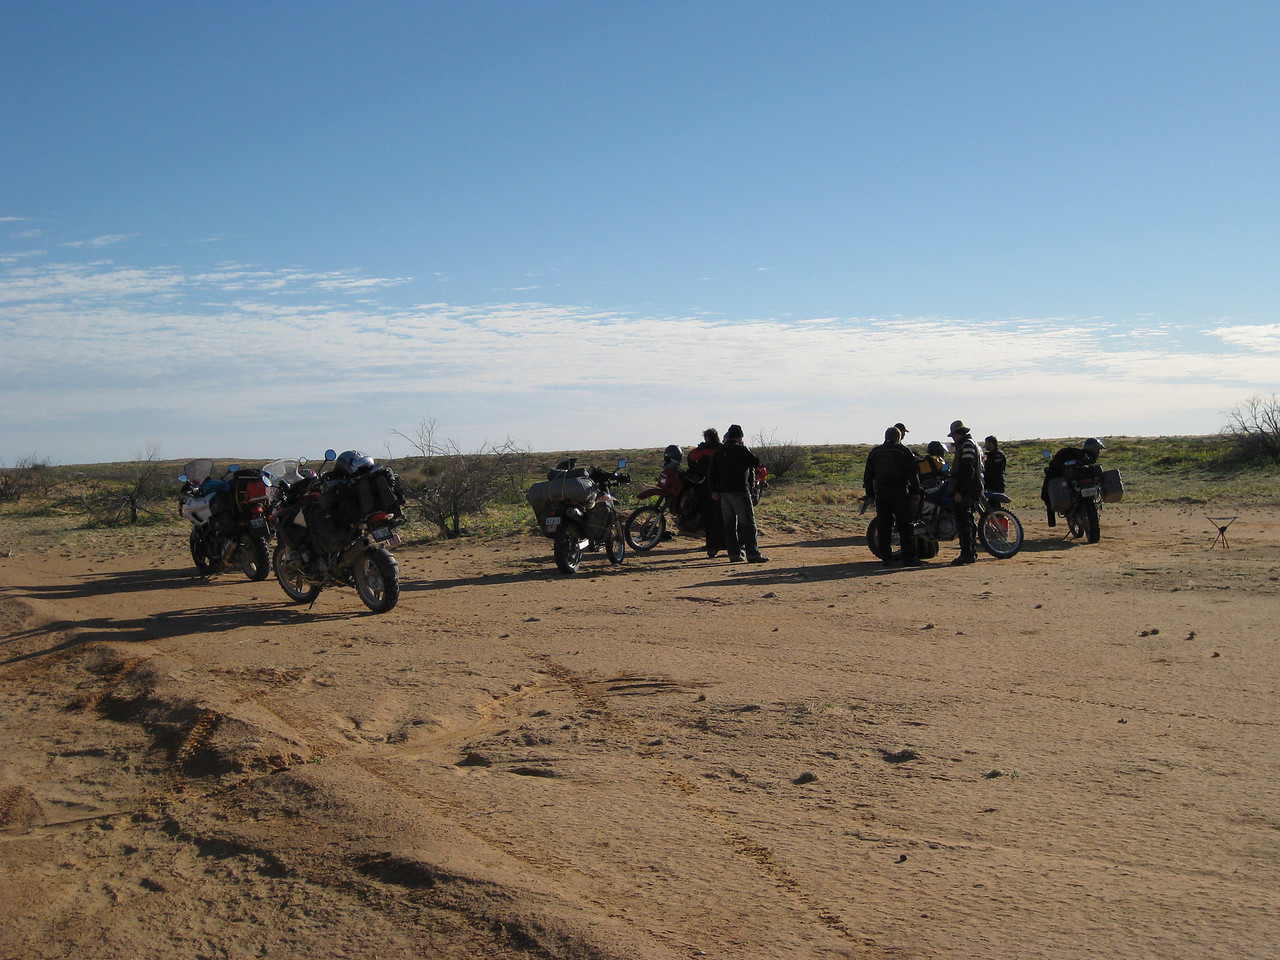 Met up with some guys from Adelaide, apparently we had camped about 10 kms apart.